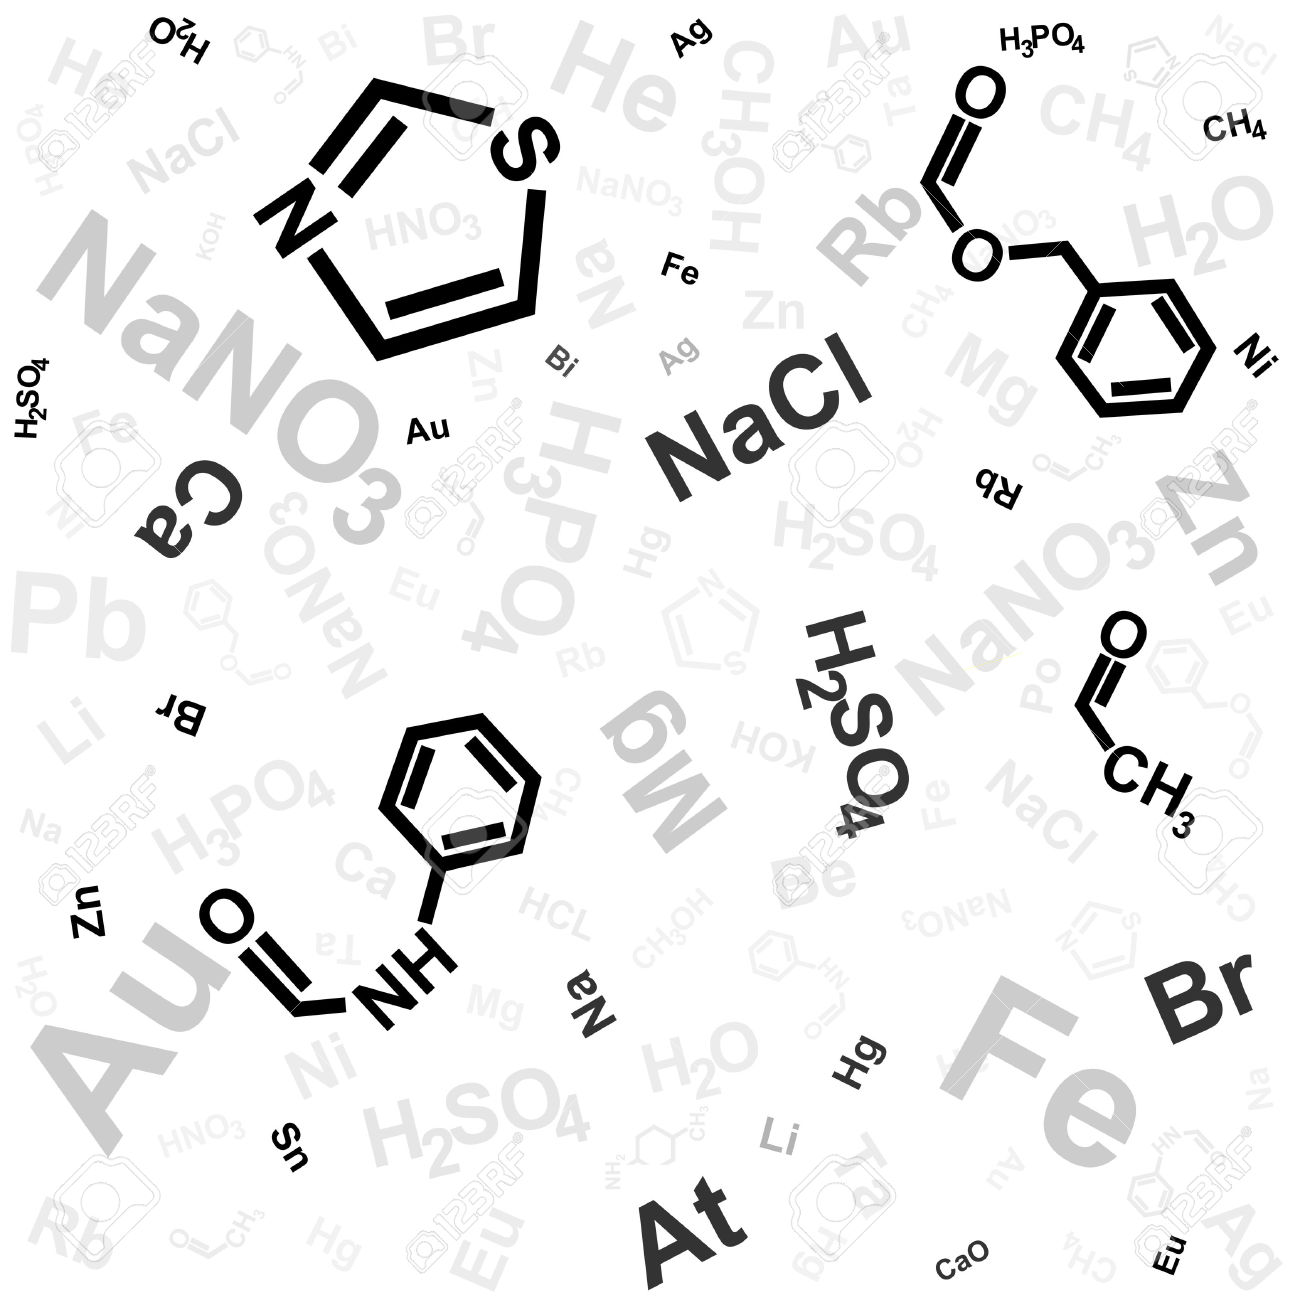 chemistry formula: abstract | clipart panda - free clipart images